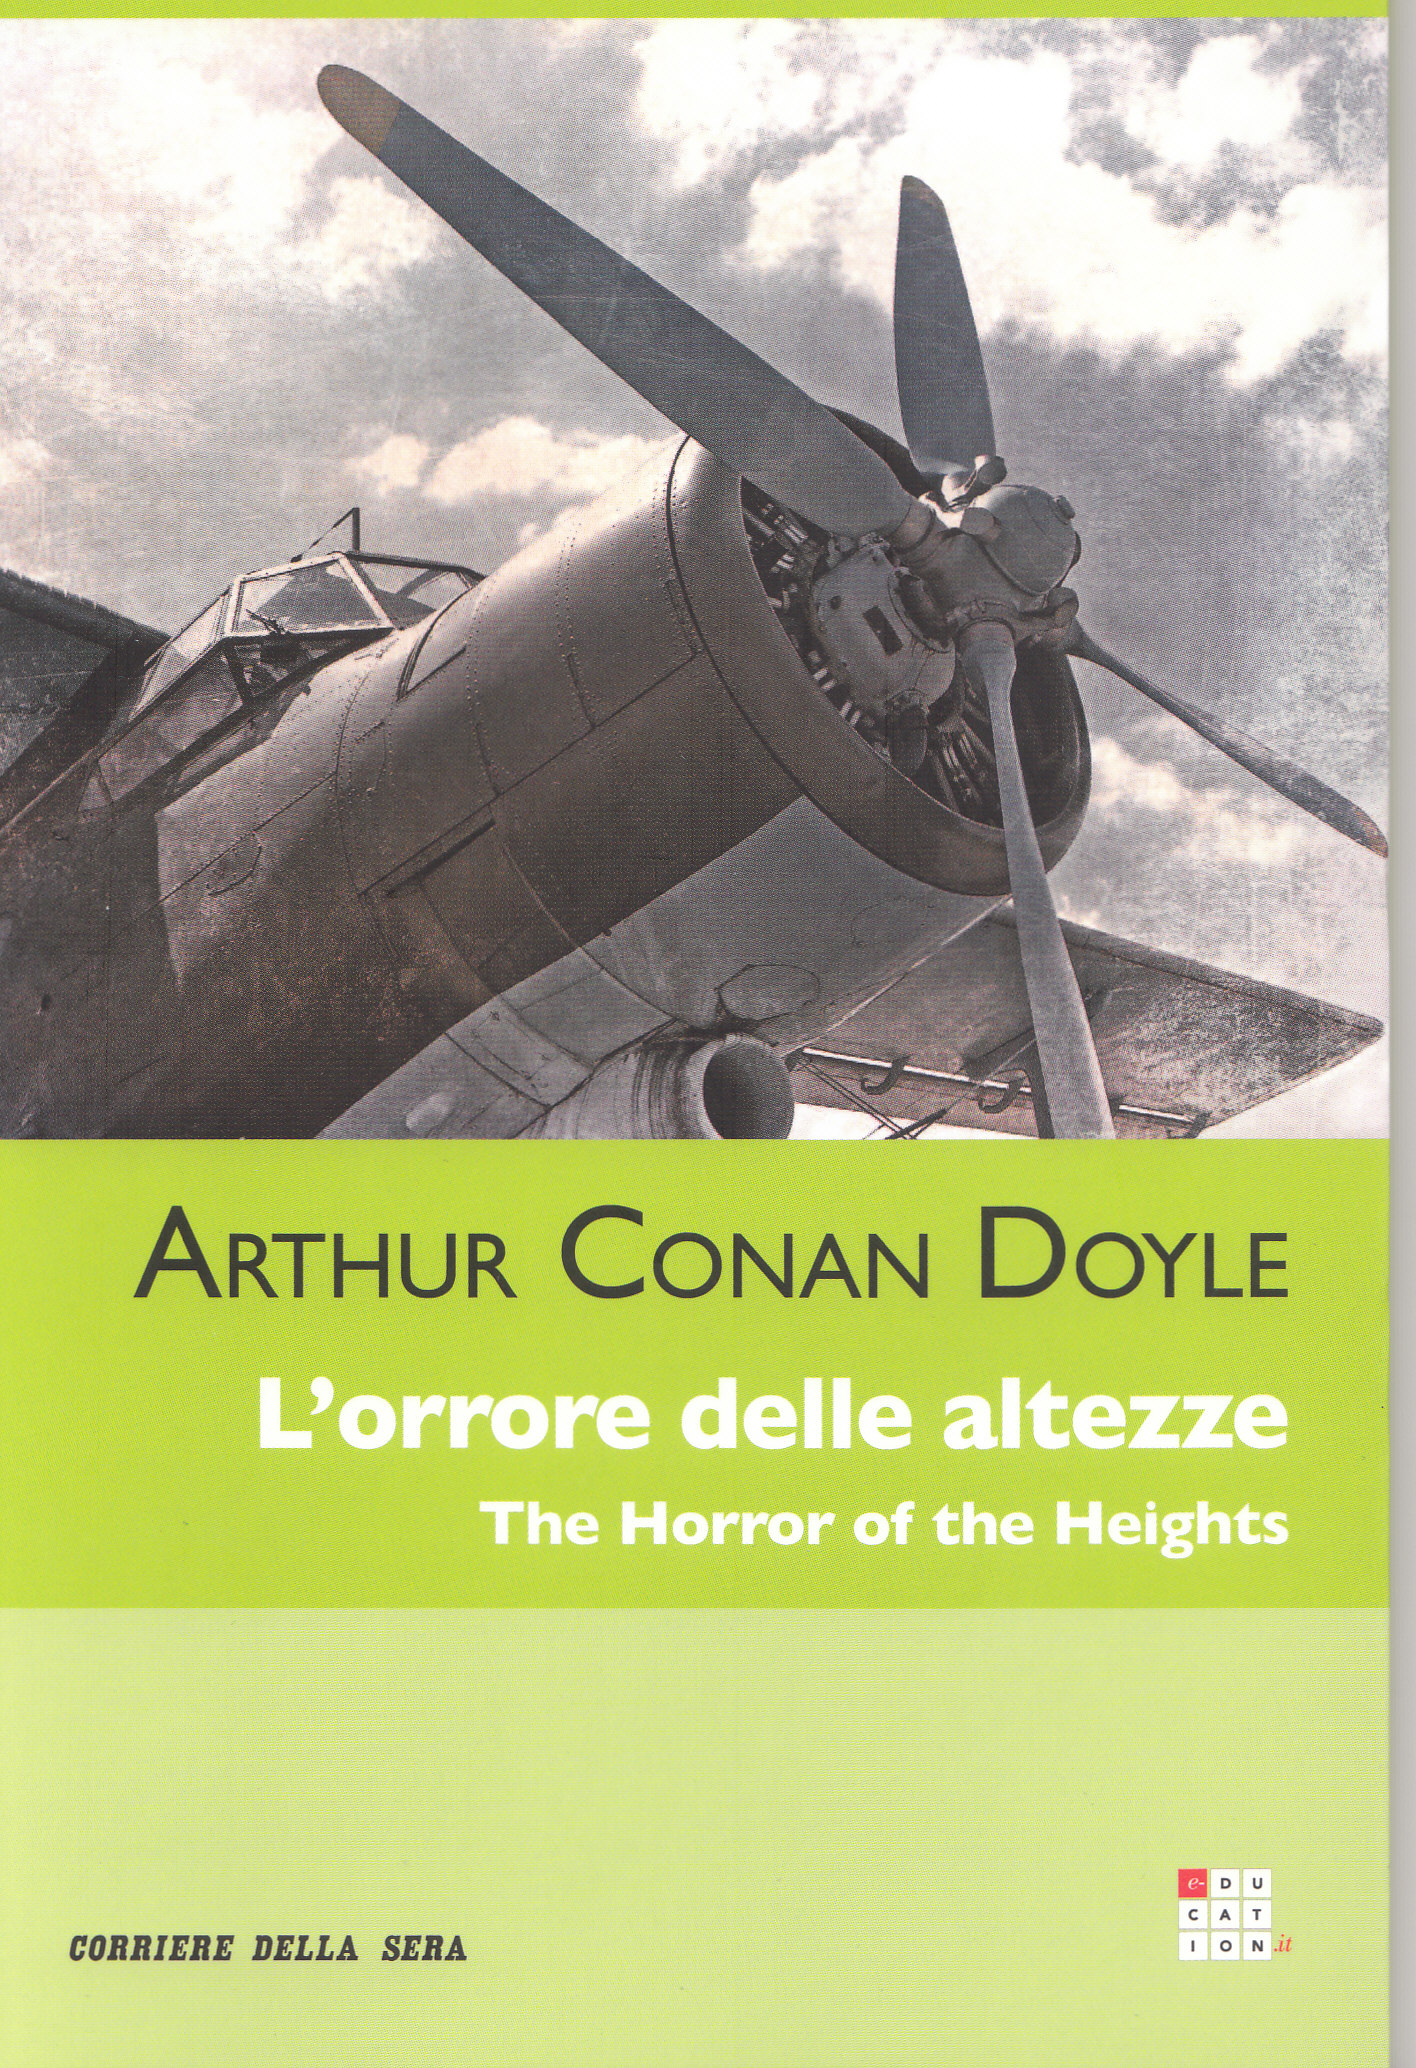 L'orrore delle altezze/The Horror of the Heights